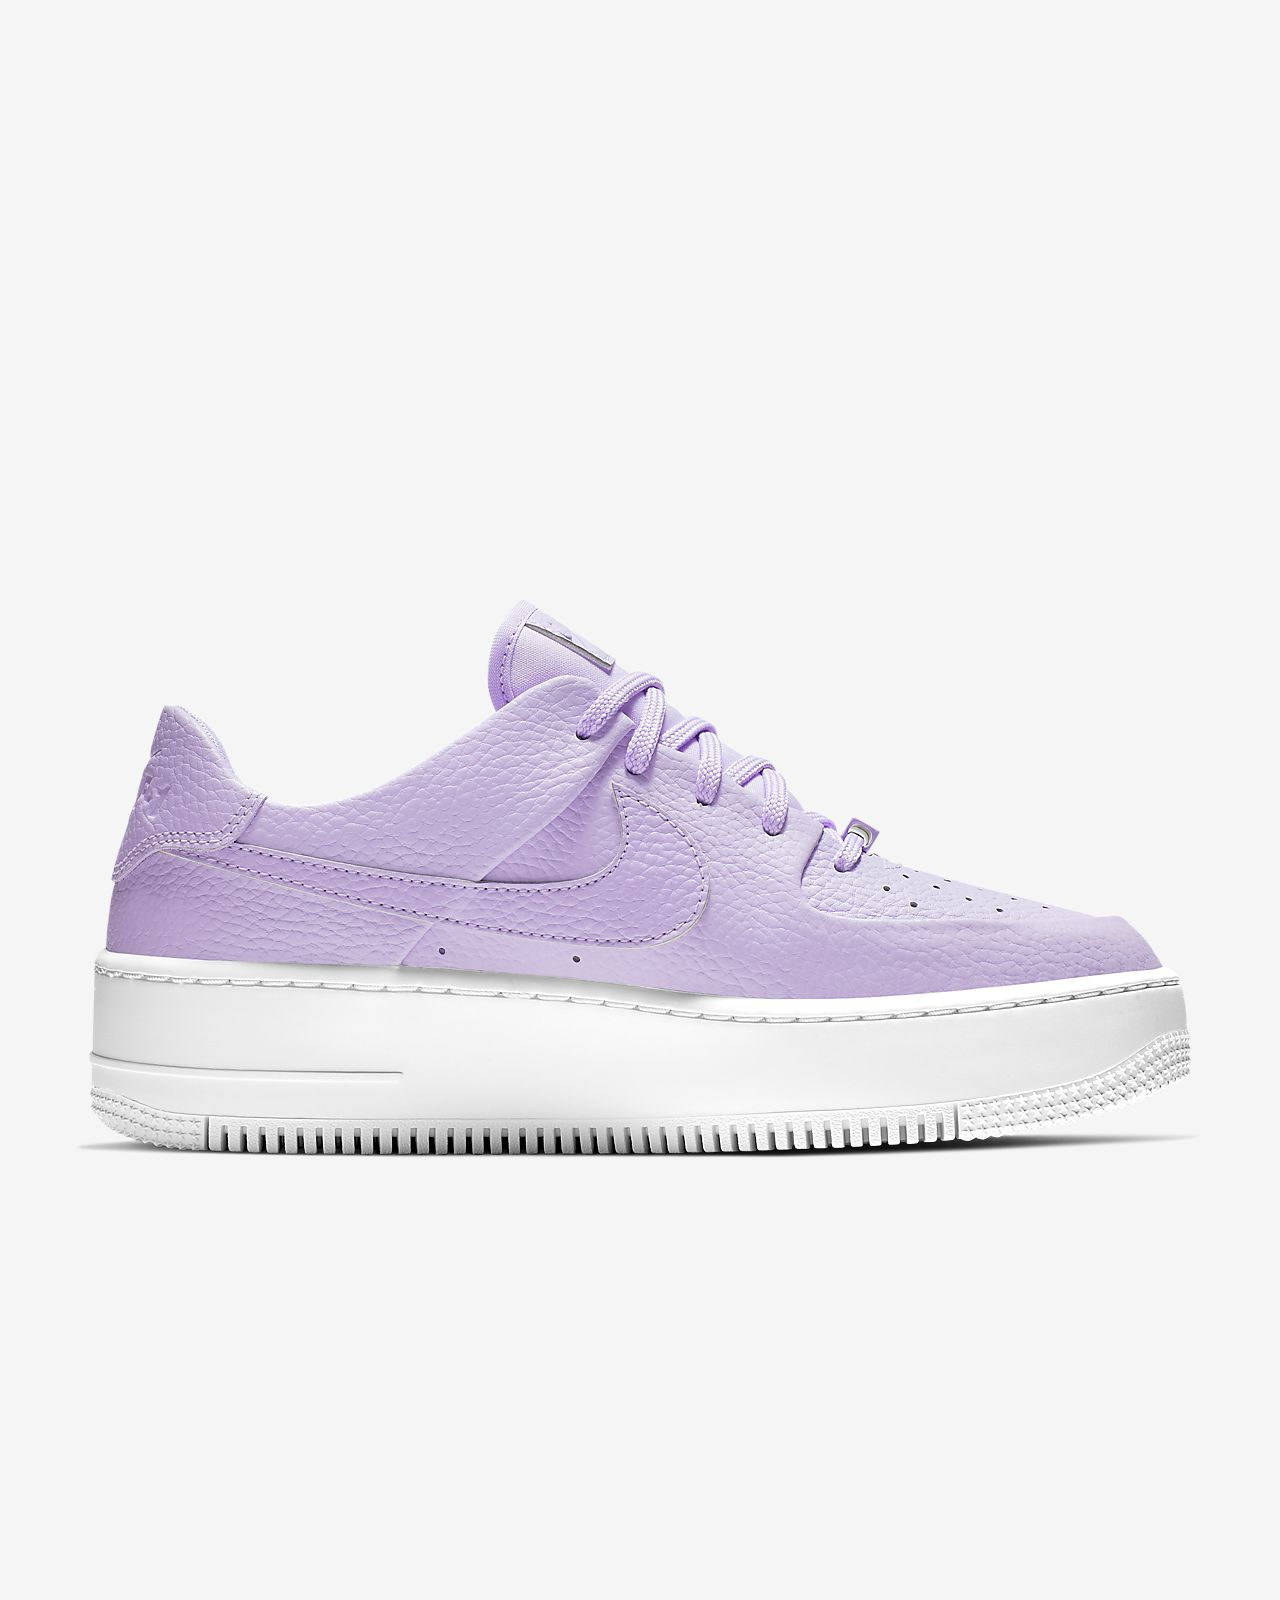 low priced d2e72 56f49 Chaussure Nike Air Force 1 Sage Low pour Femme. Nike.com CA